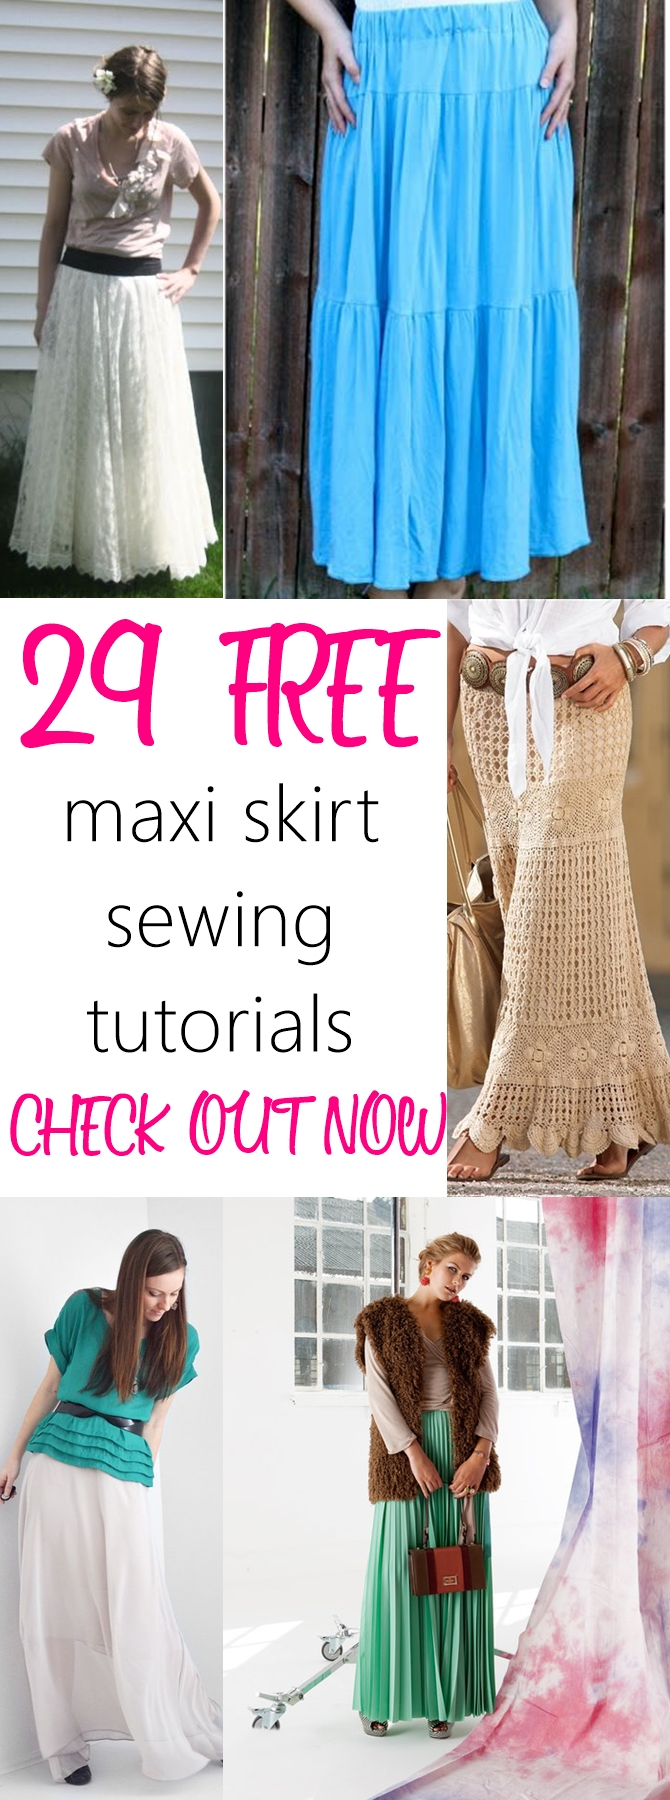 long skirt designs | how to make a skirt | skirt patterns free | how to make a maxi skirt | Maxi Skirts Free Sewing Patterns and Tutorials